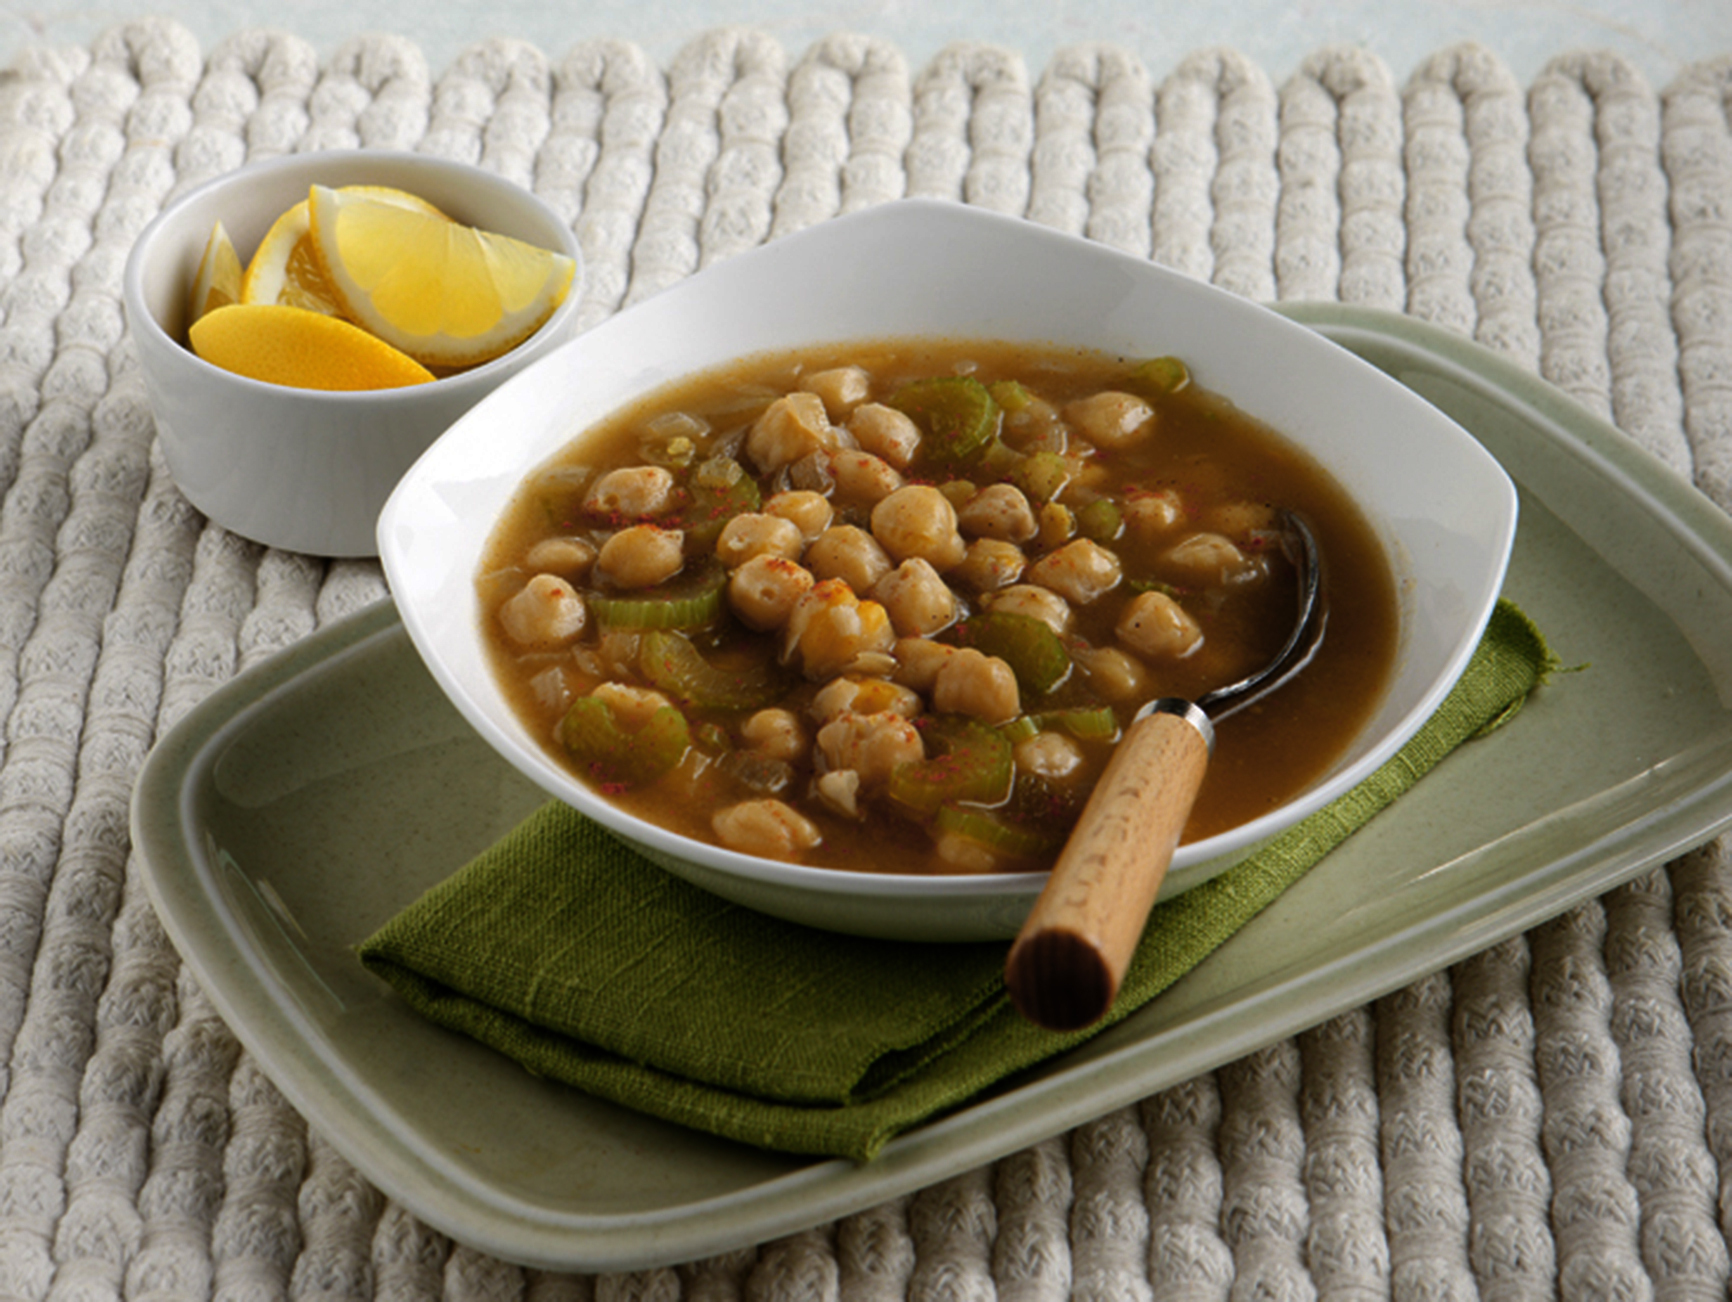 FOOD FRIDAY - CHICK PEAS